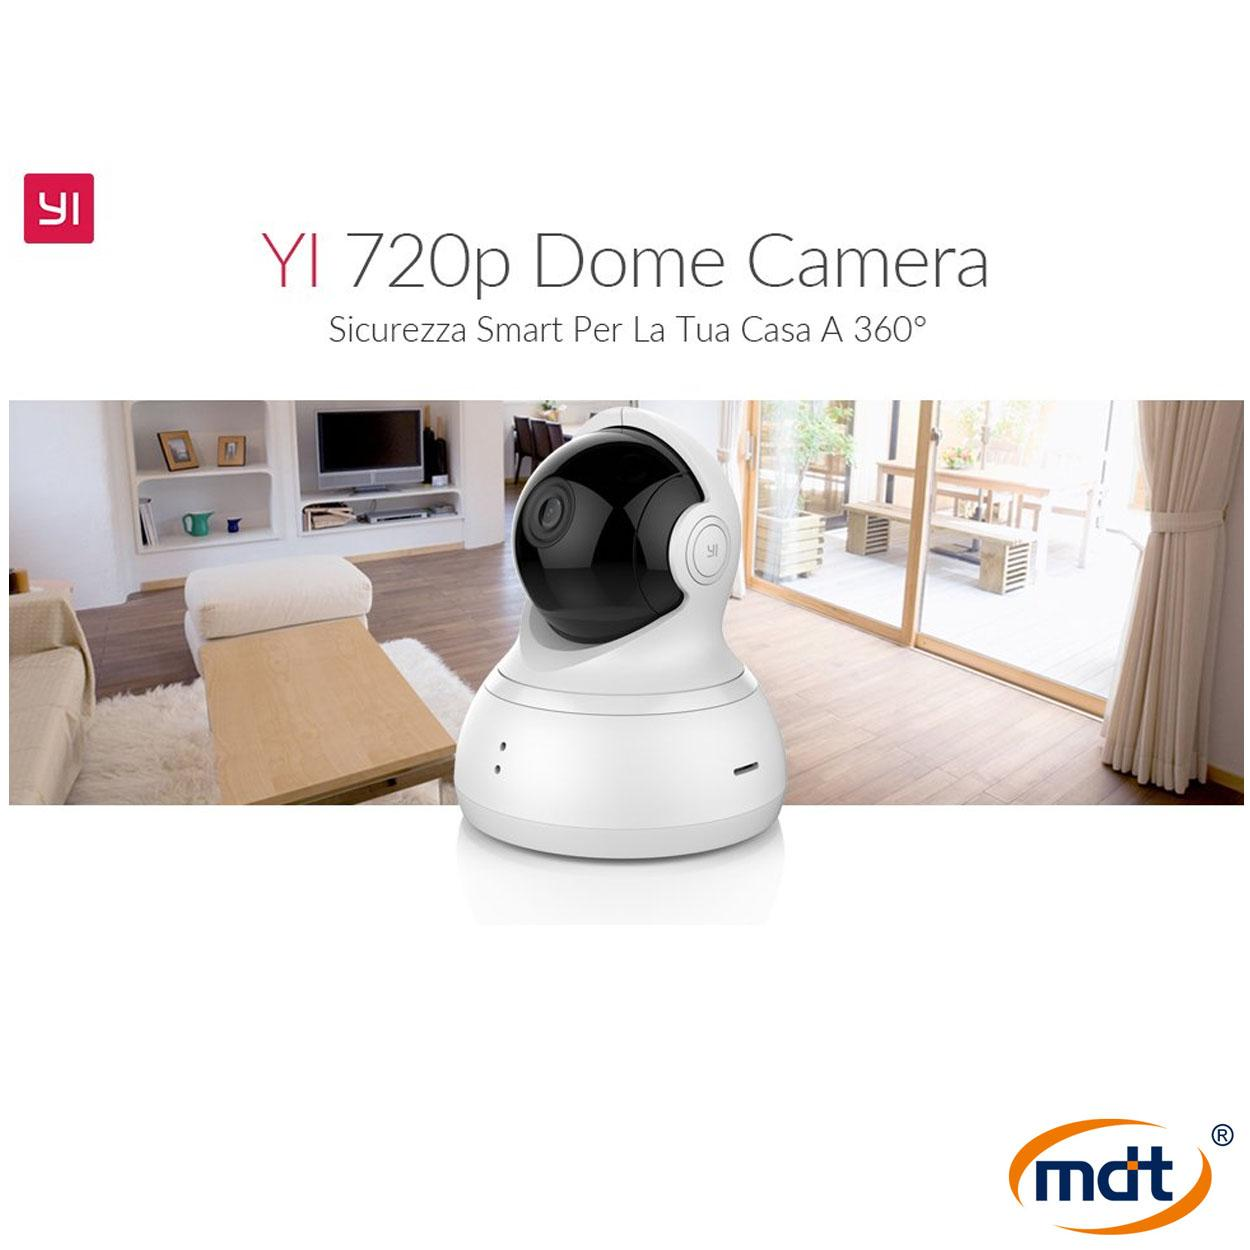 Buy Sell Cheapest Xiaomi Yi Ip Best Quality Product Deals Original Dome 720p Camera International Version White Cctv Monitor Pan Tilt Zoom Wireless Security Surveillance System Hd